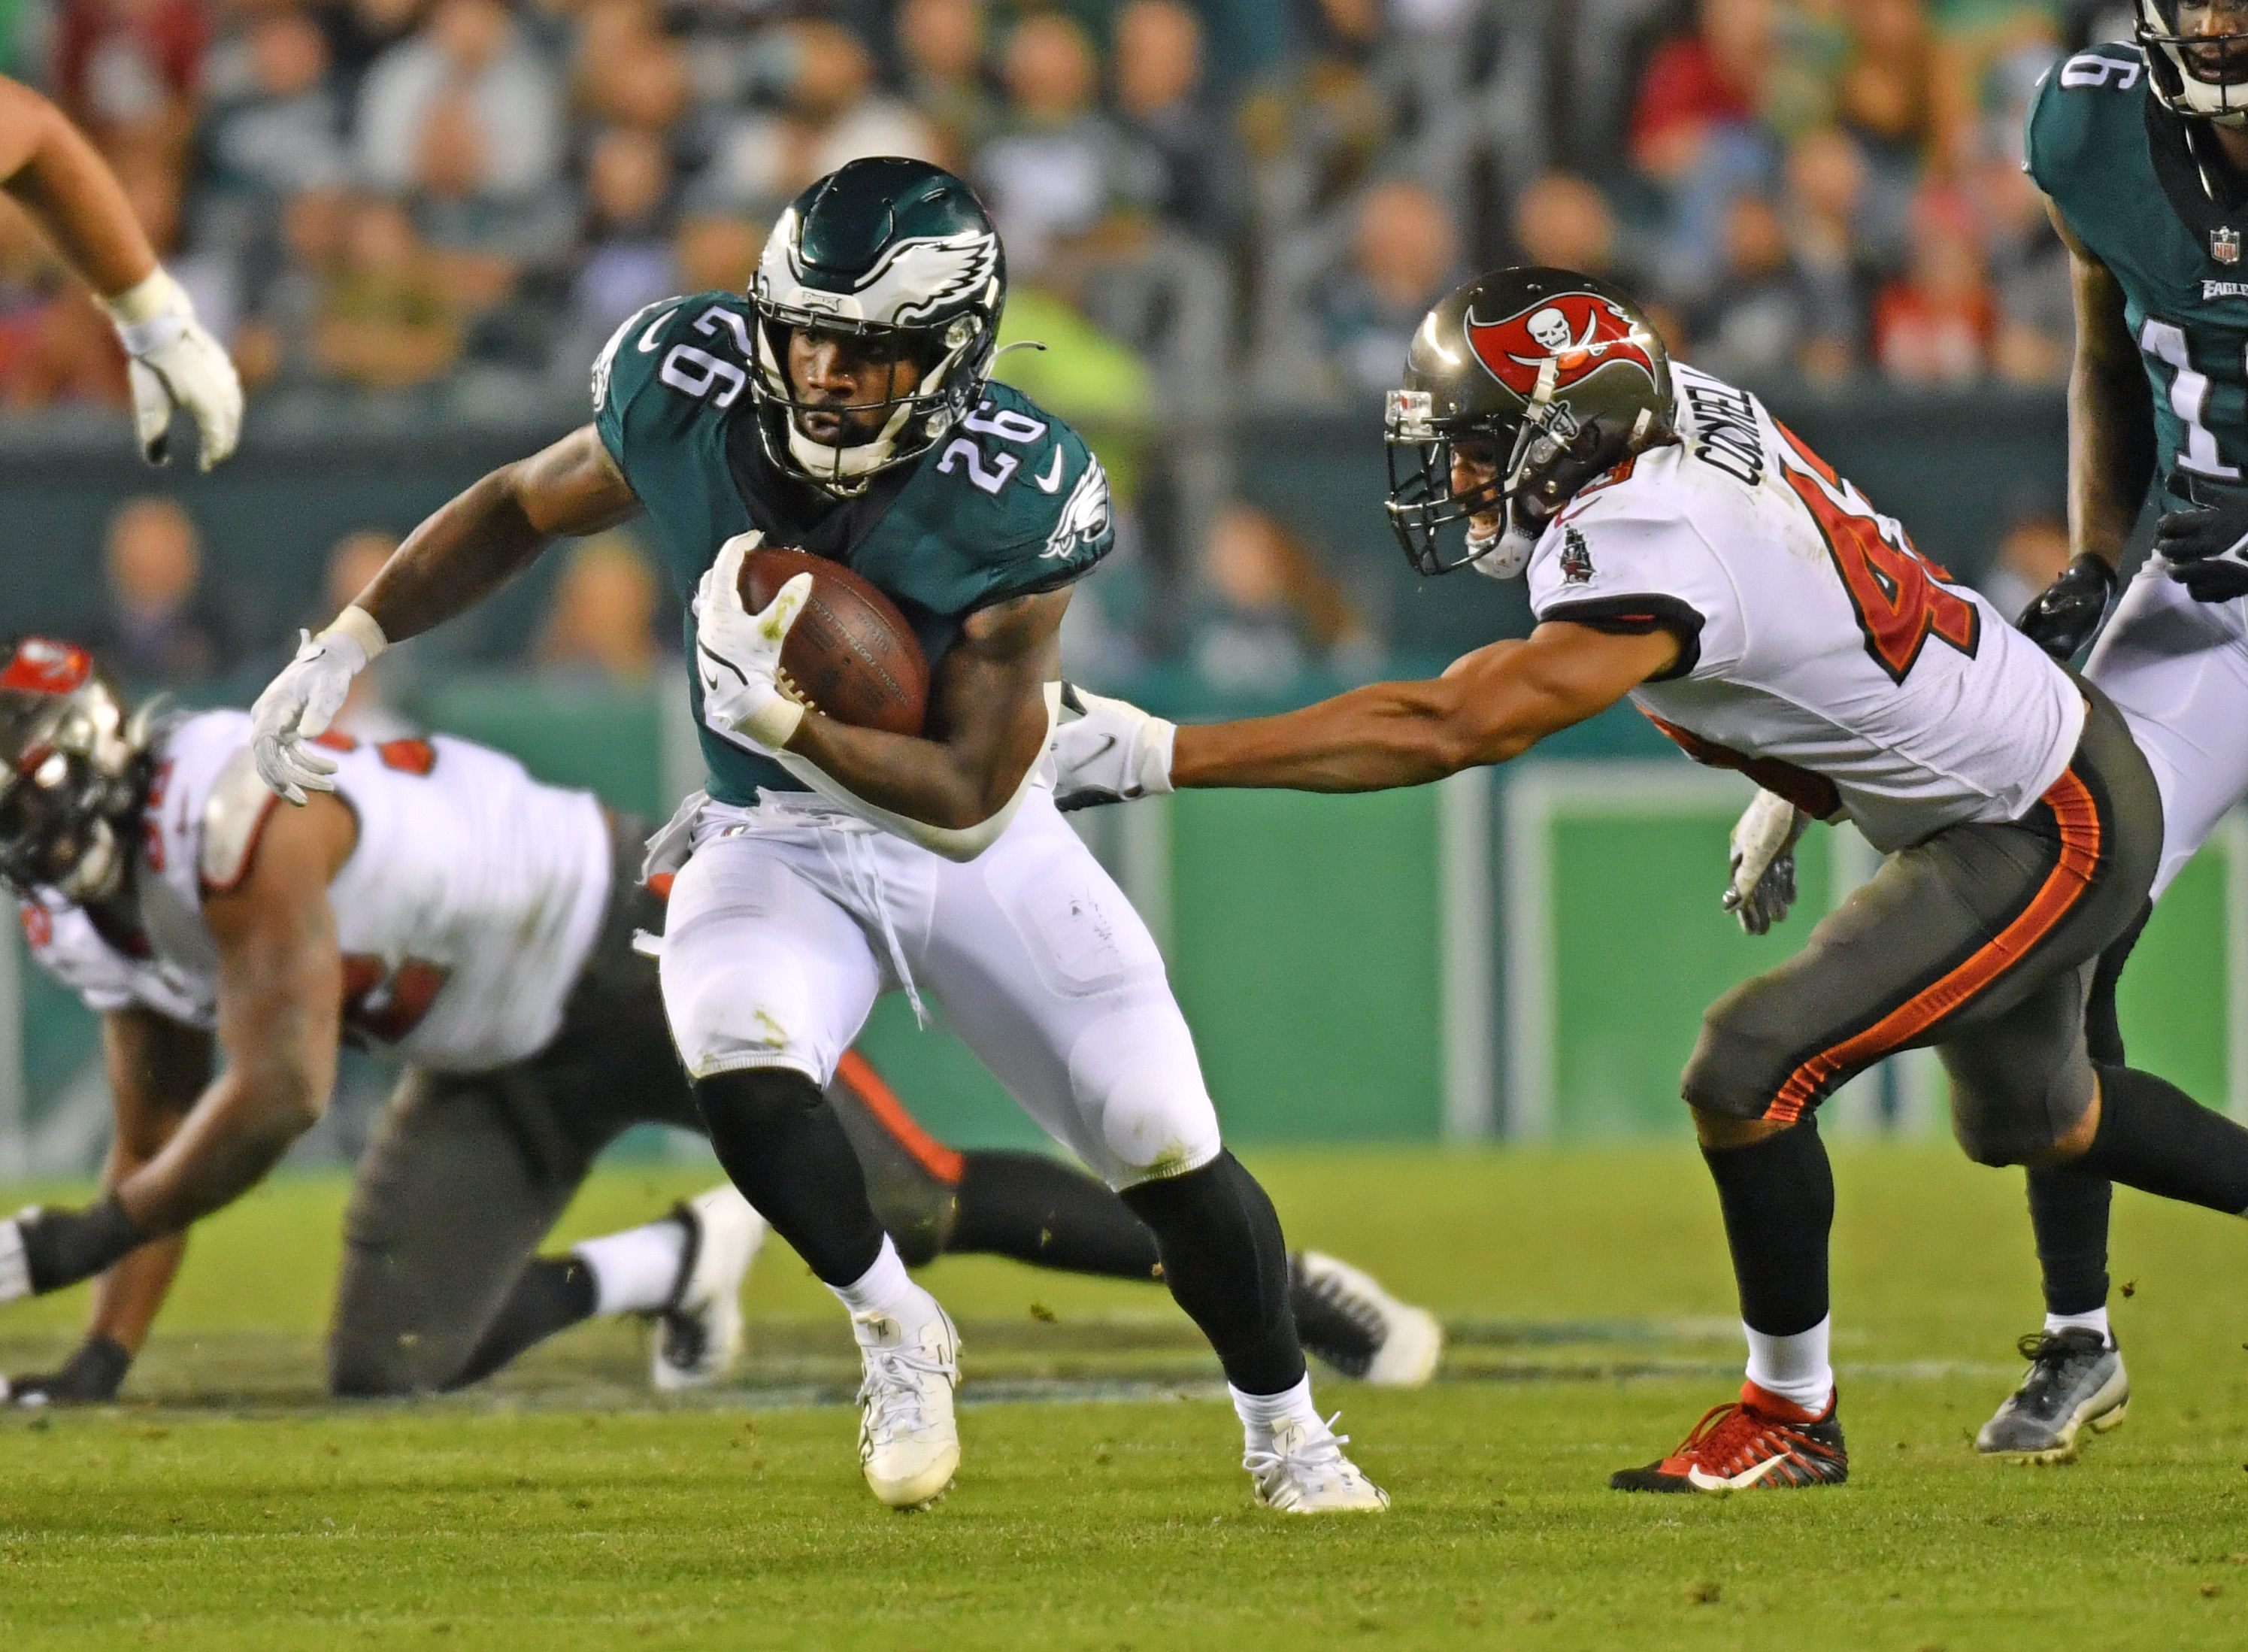 Three things to watch when the Eagles play Raiders in Week 7